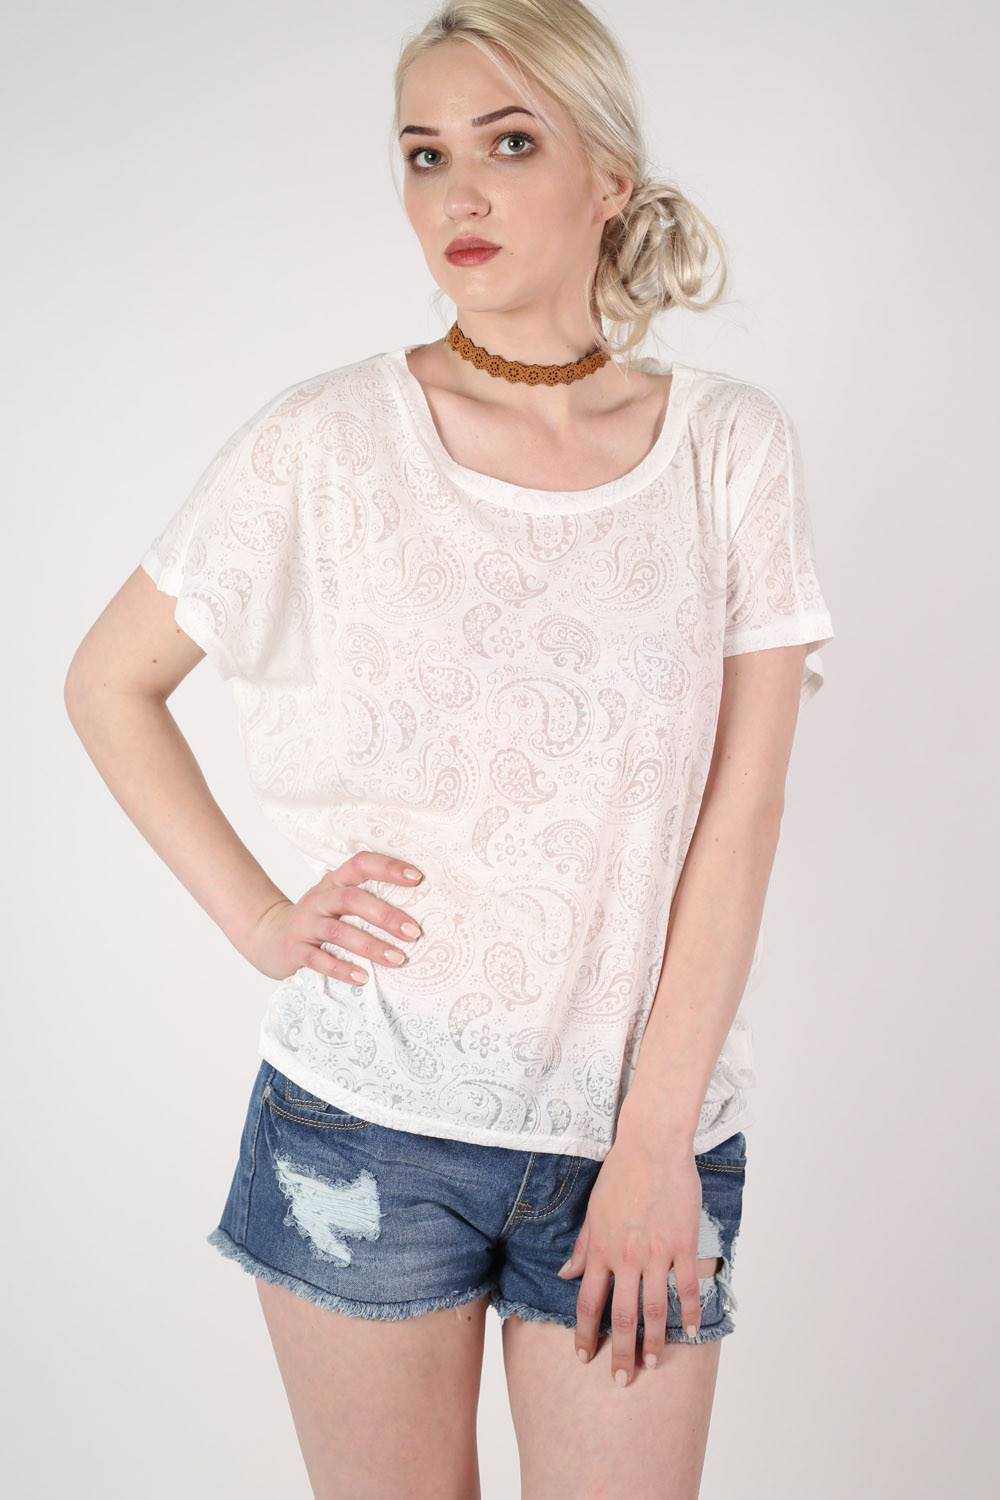 Burnout Paisley Print Oversized Top in White 0